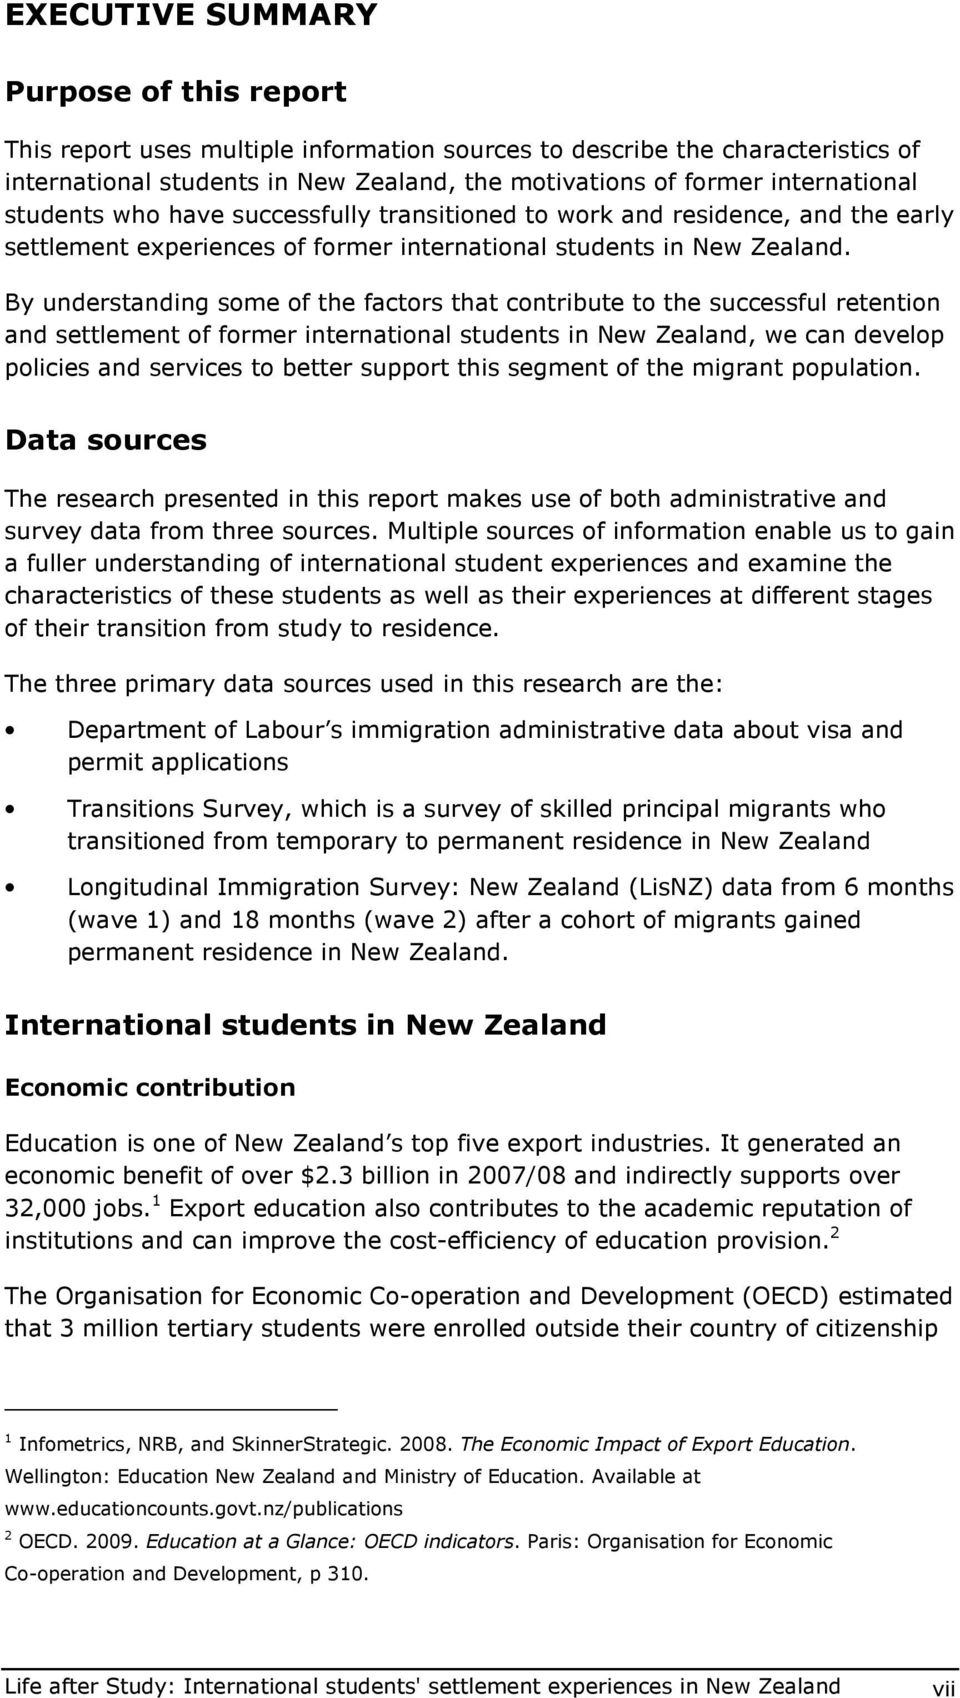 By understanding sme f the factrs that cntribute t the successful retentin and settlement f frmer internatinal students in New Zealand, we can develp plicies and services t better supprt this segment